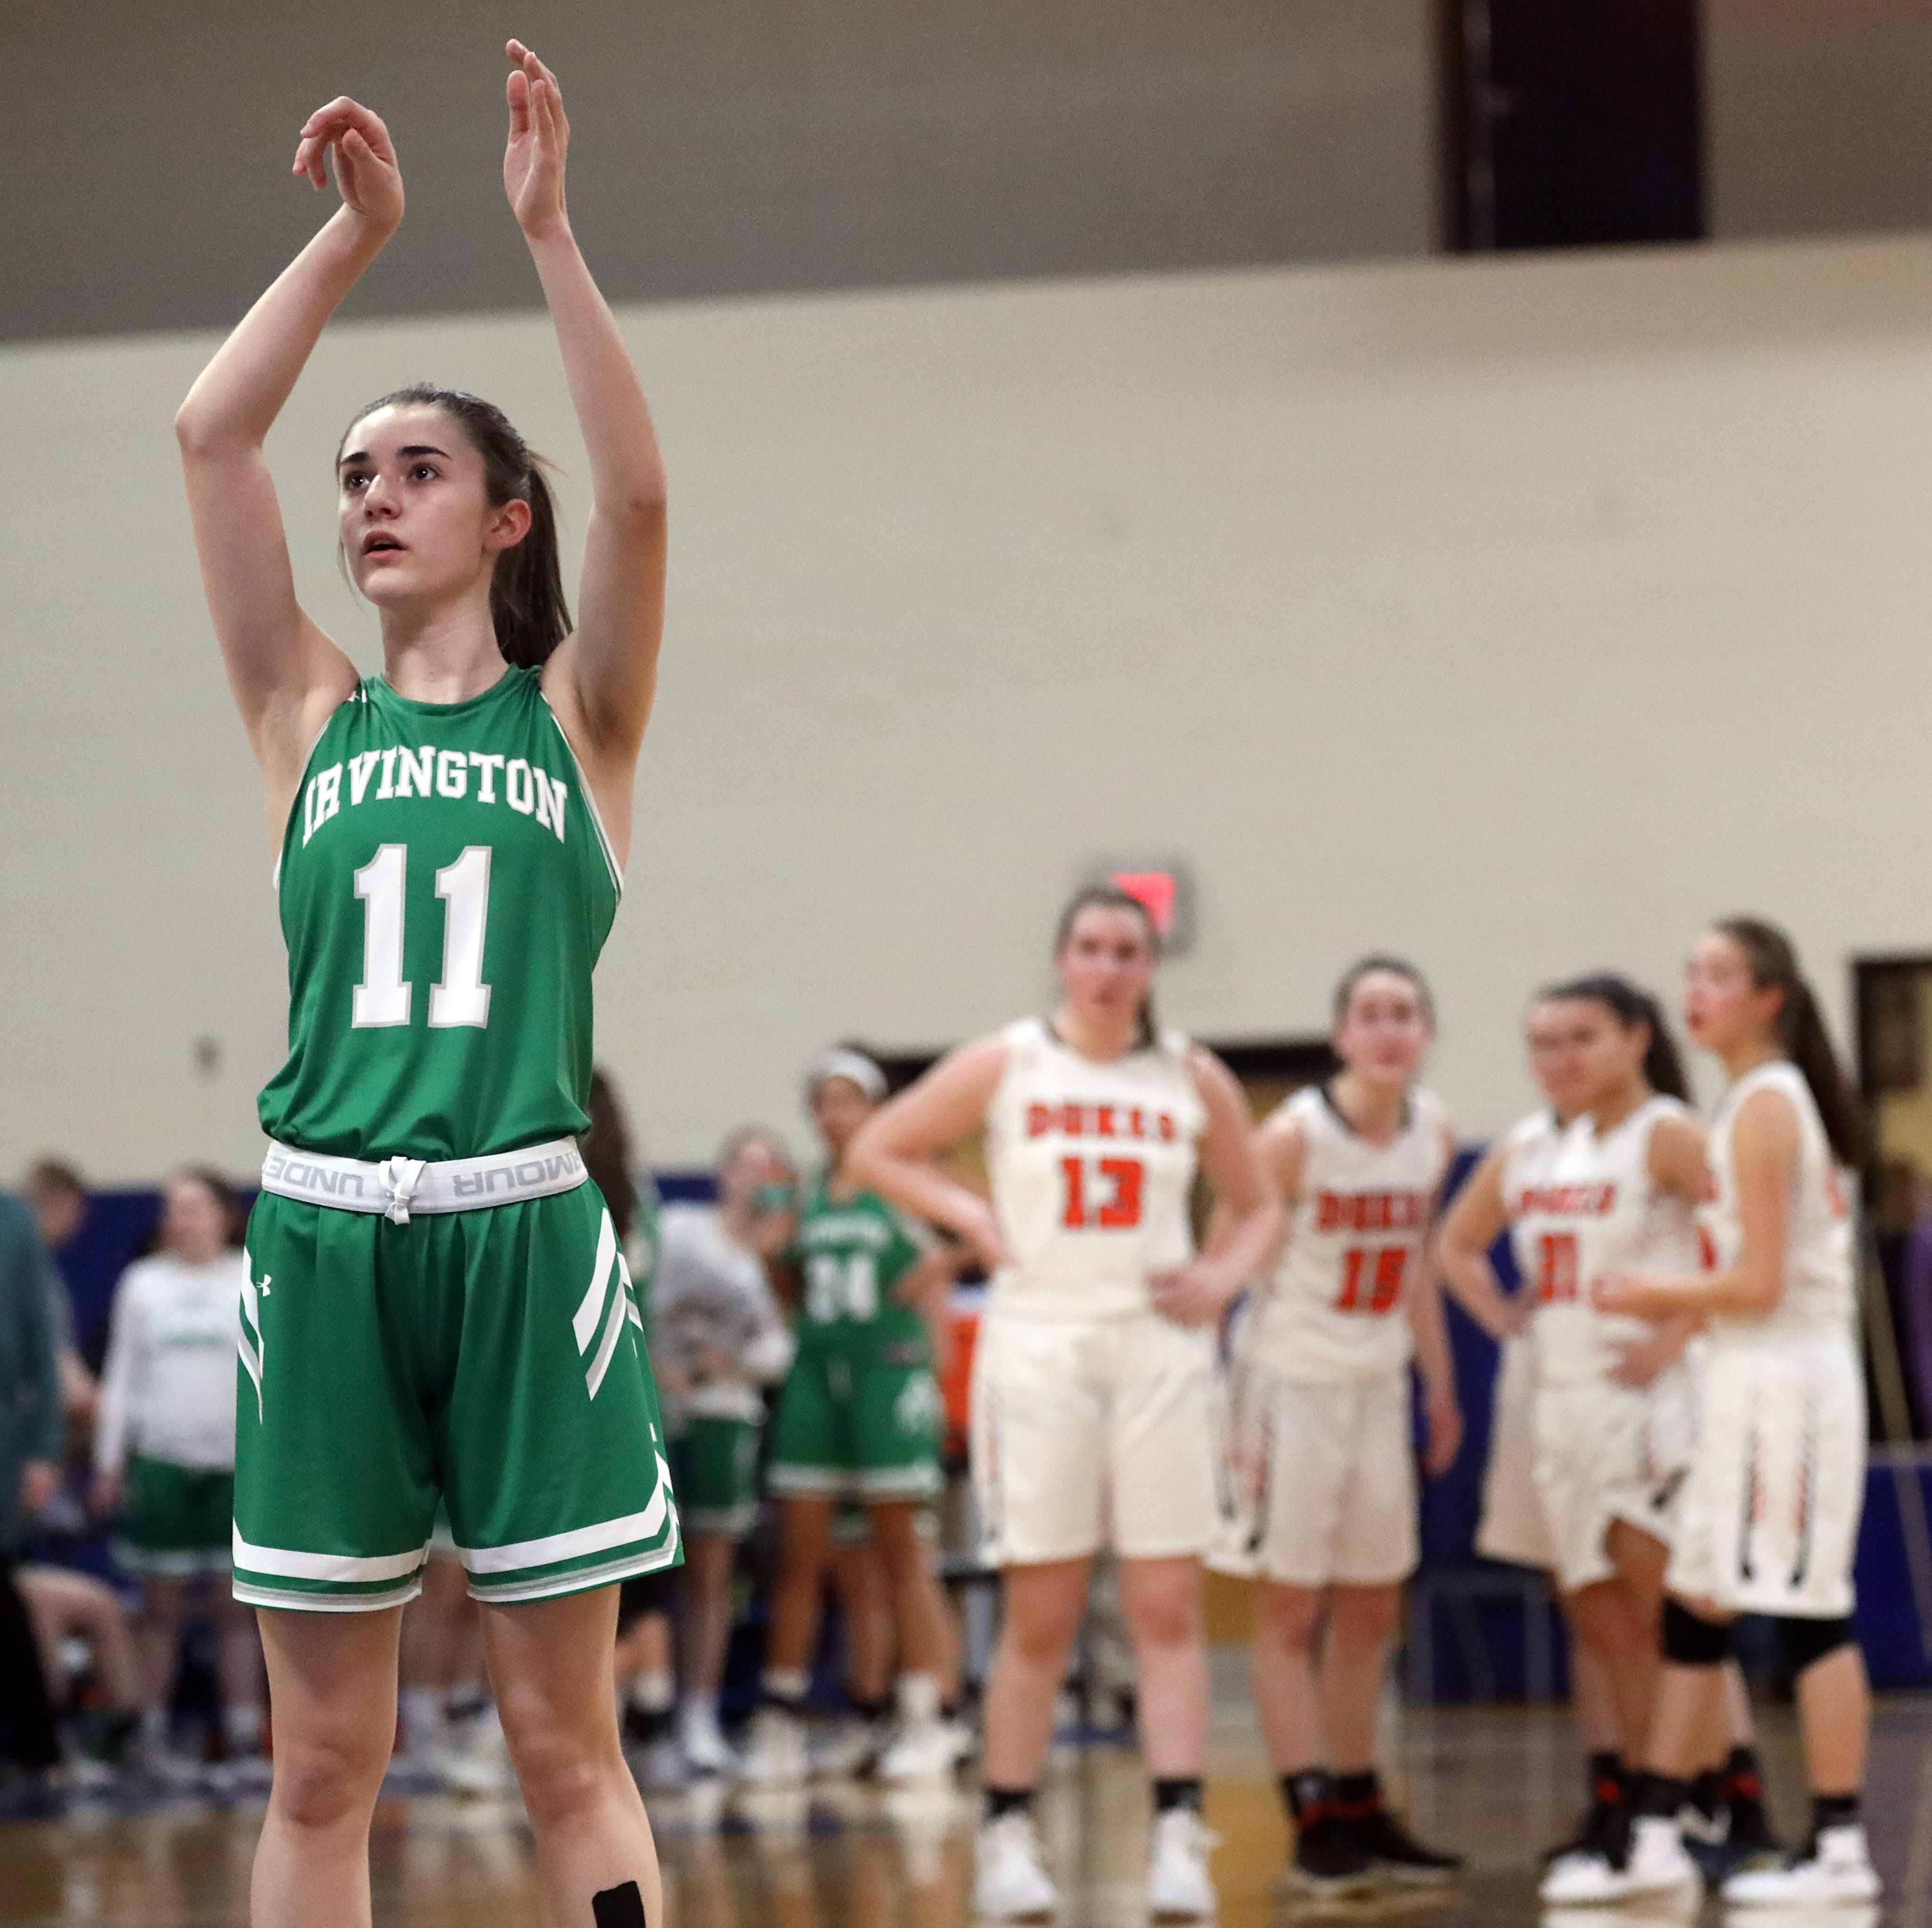 NYSPHSAA votes down motion to implement National Federation rules for high school sports